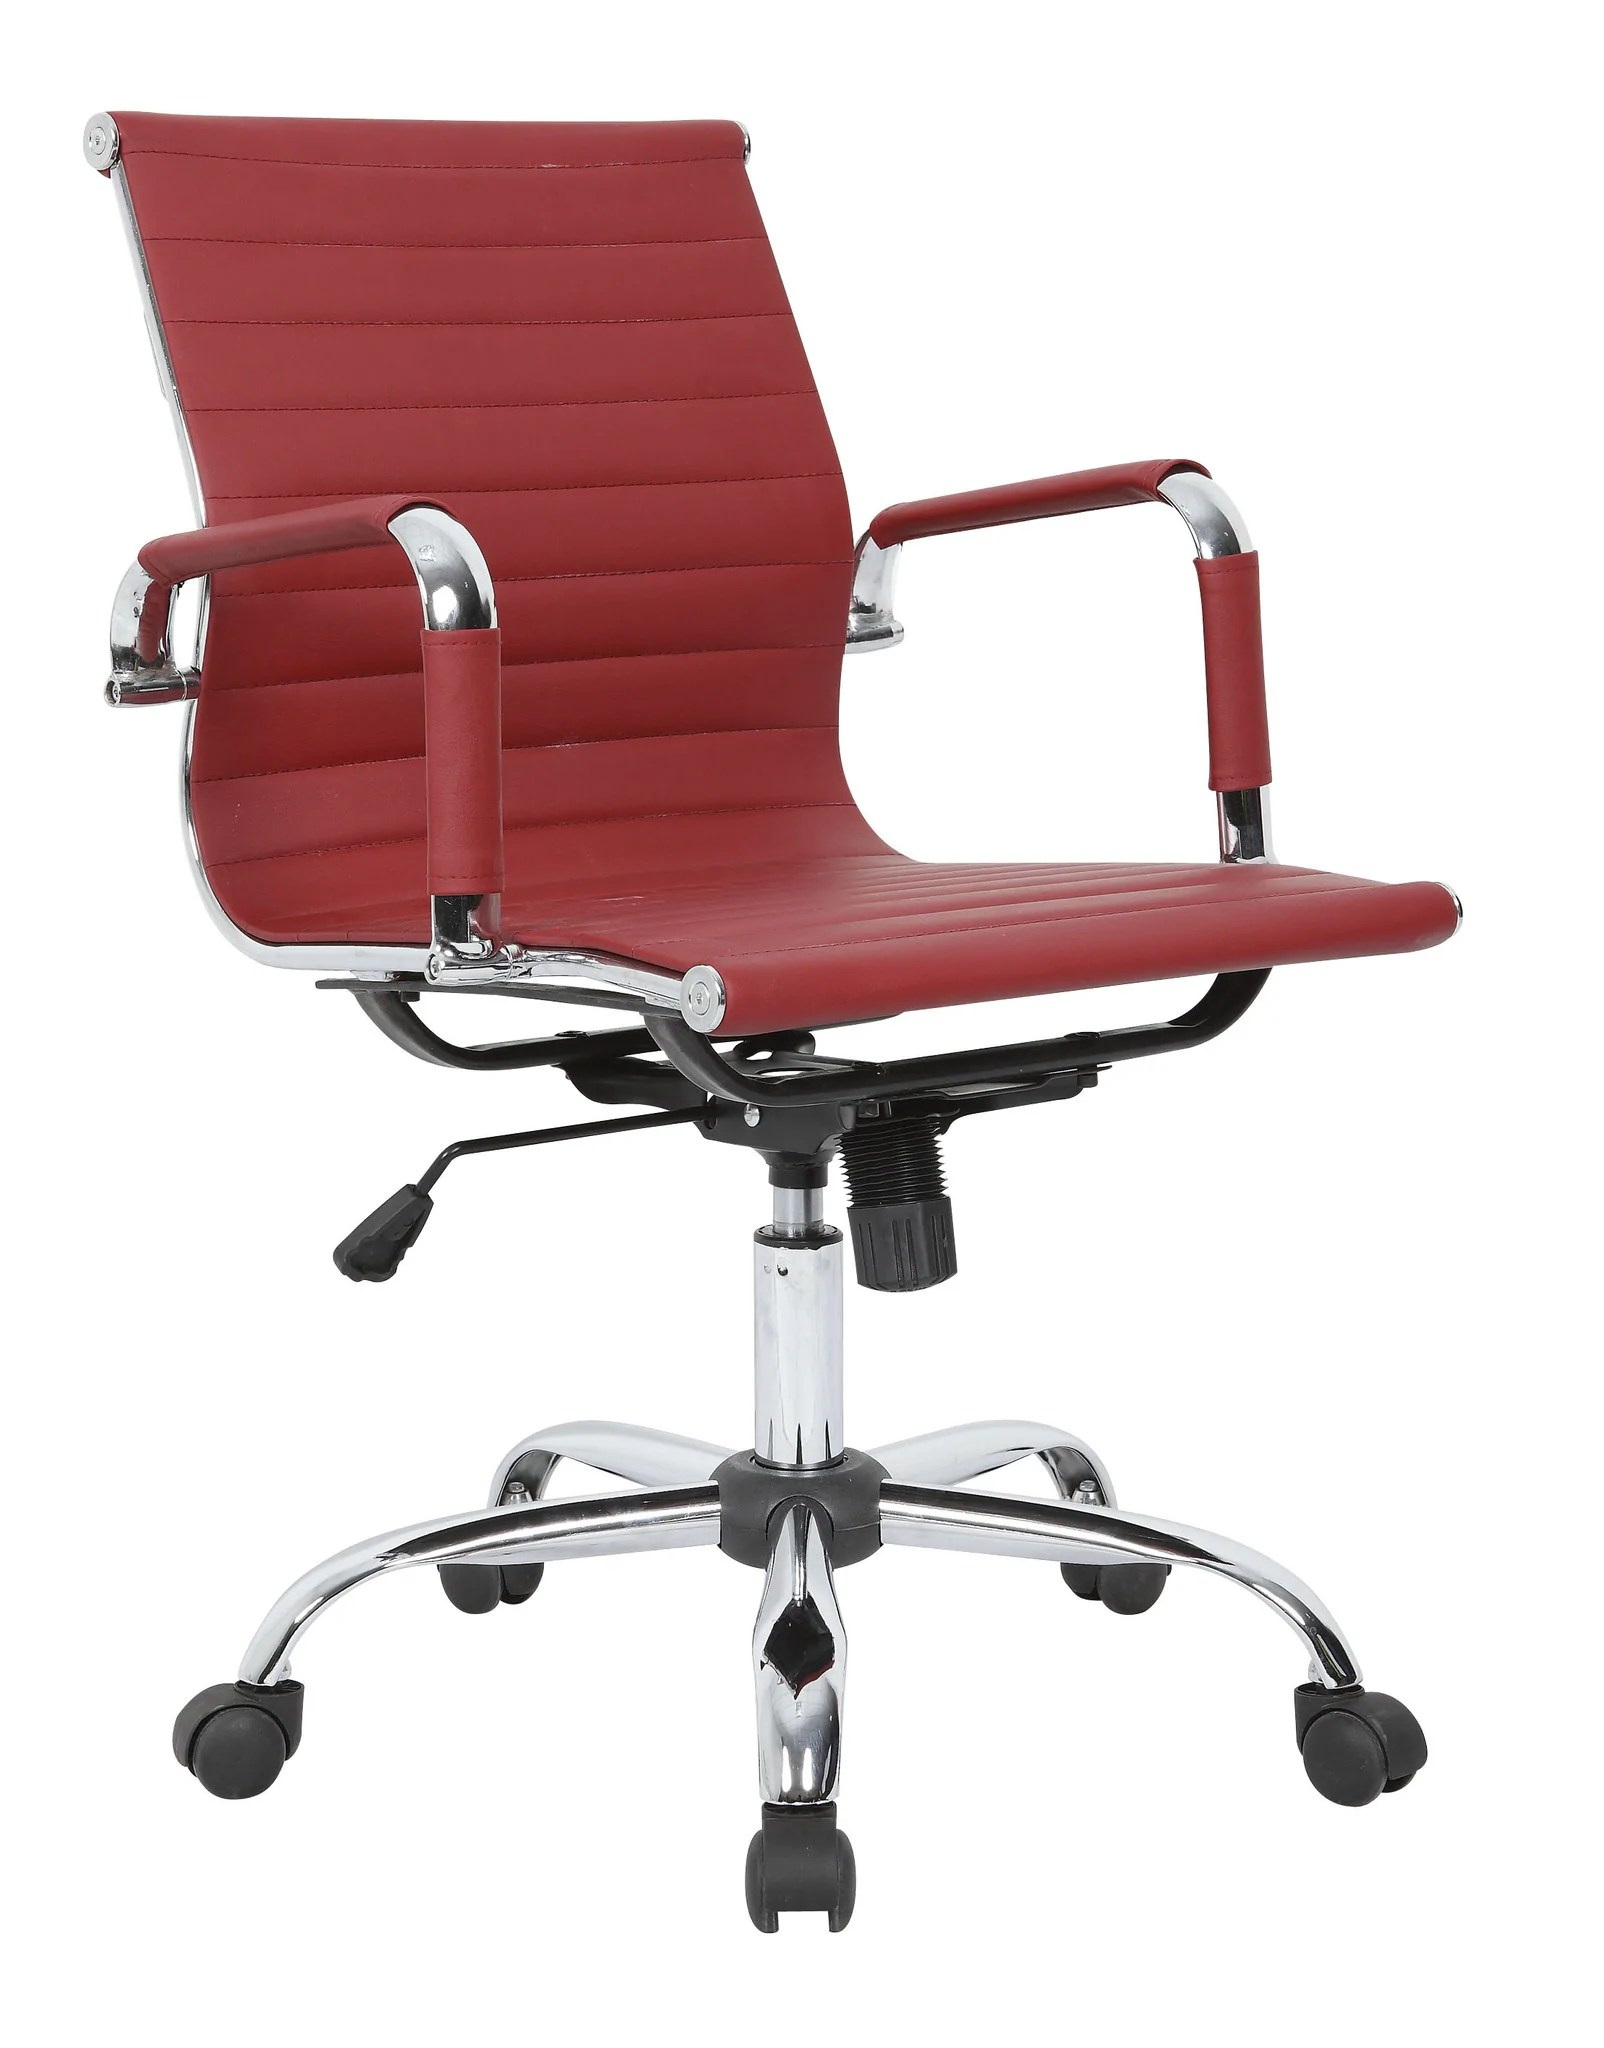 stylish office chairs uk at marshalls home goods red designer chair  outlet